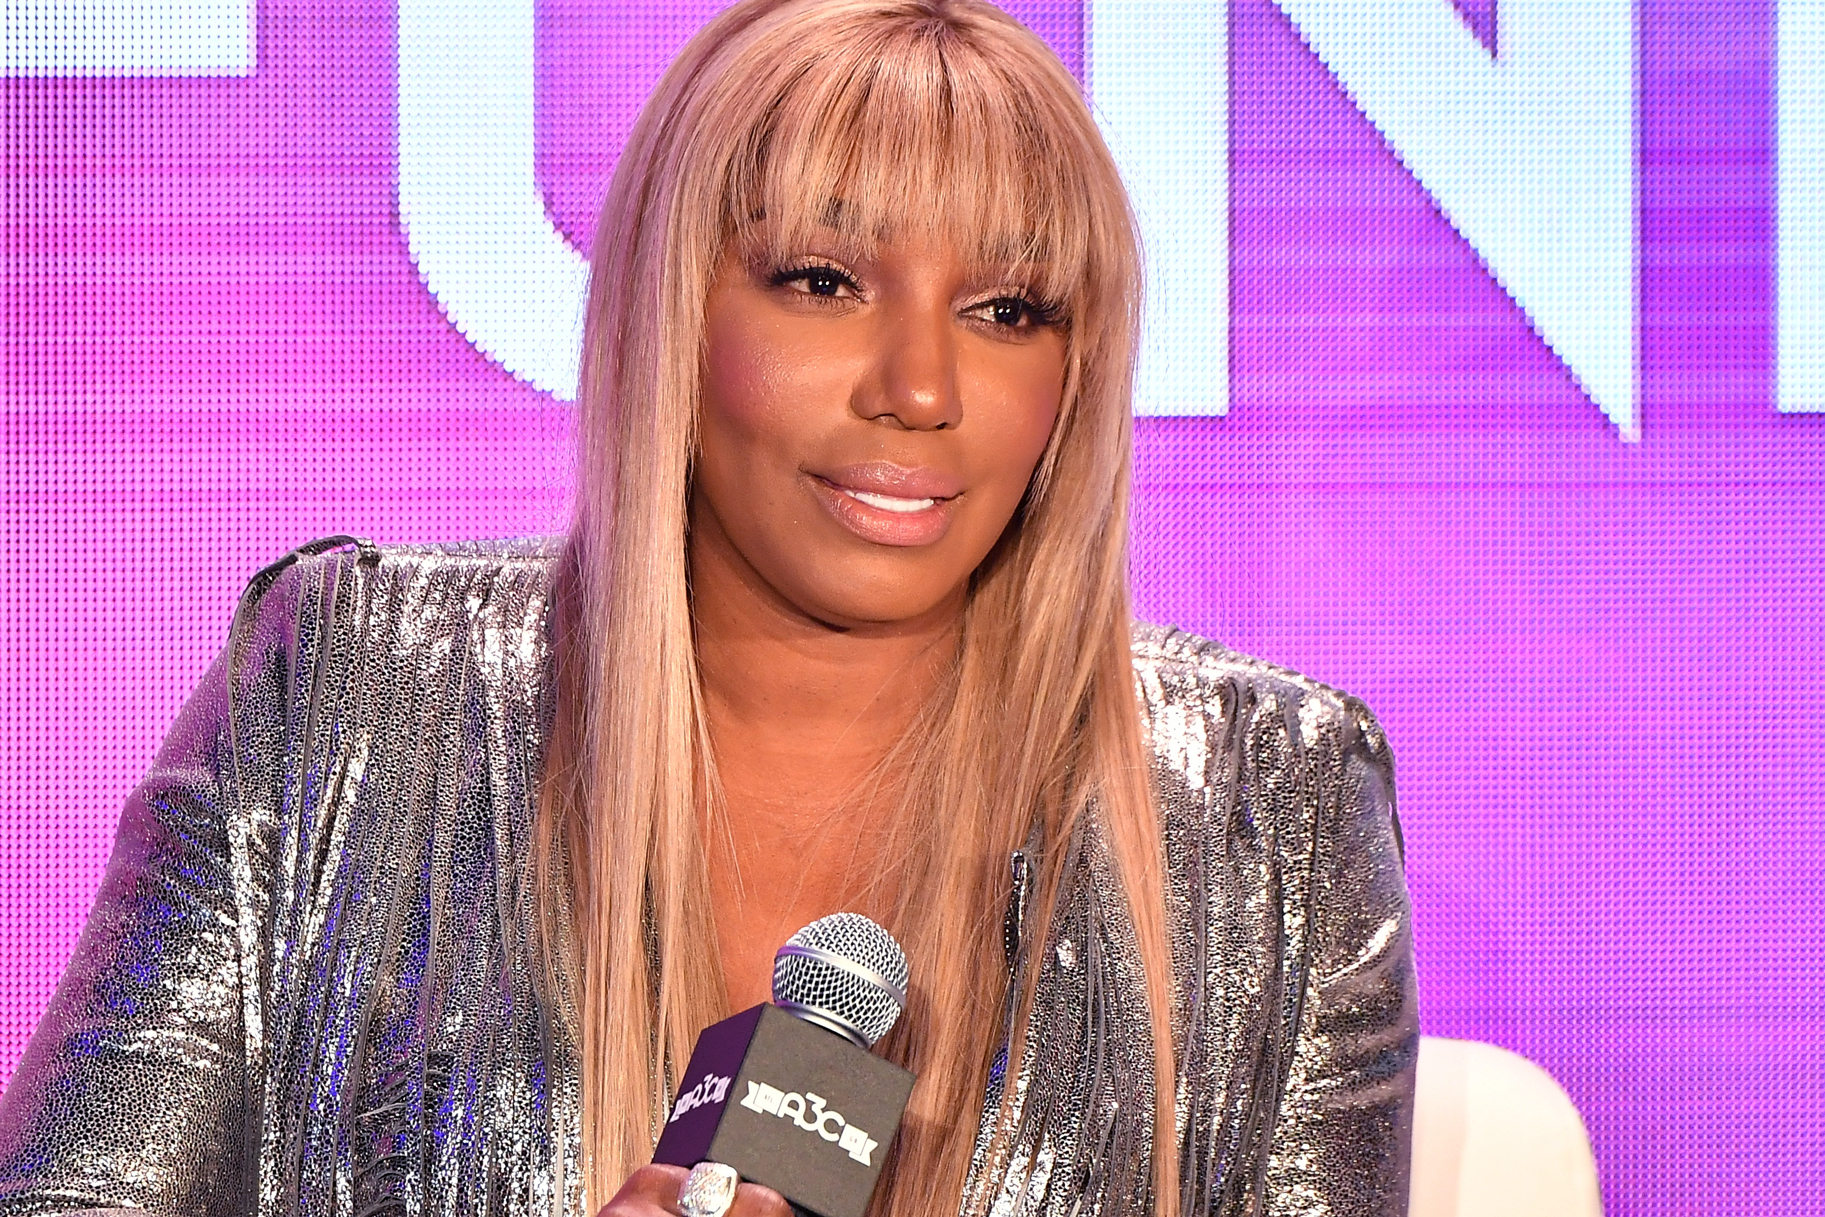 NeNe Leakes Makes Fans Smile With This Crazy Clip She Shared